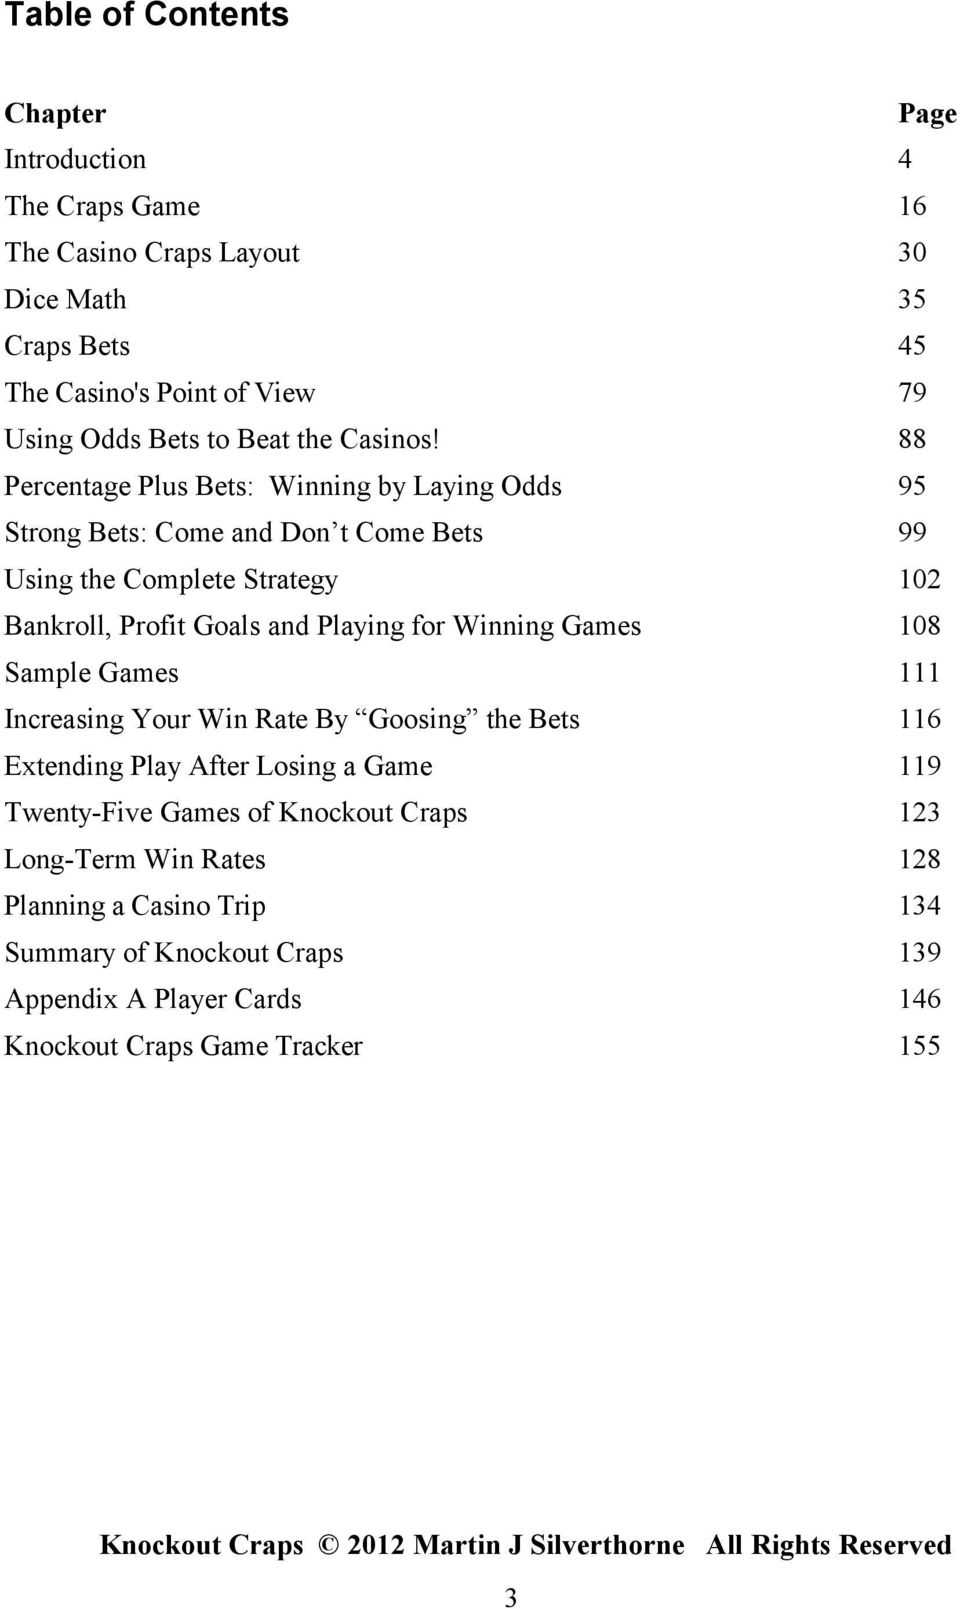 The best craps systems by silverthorne publications al anon gambling